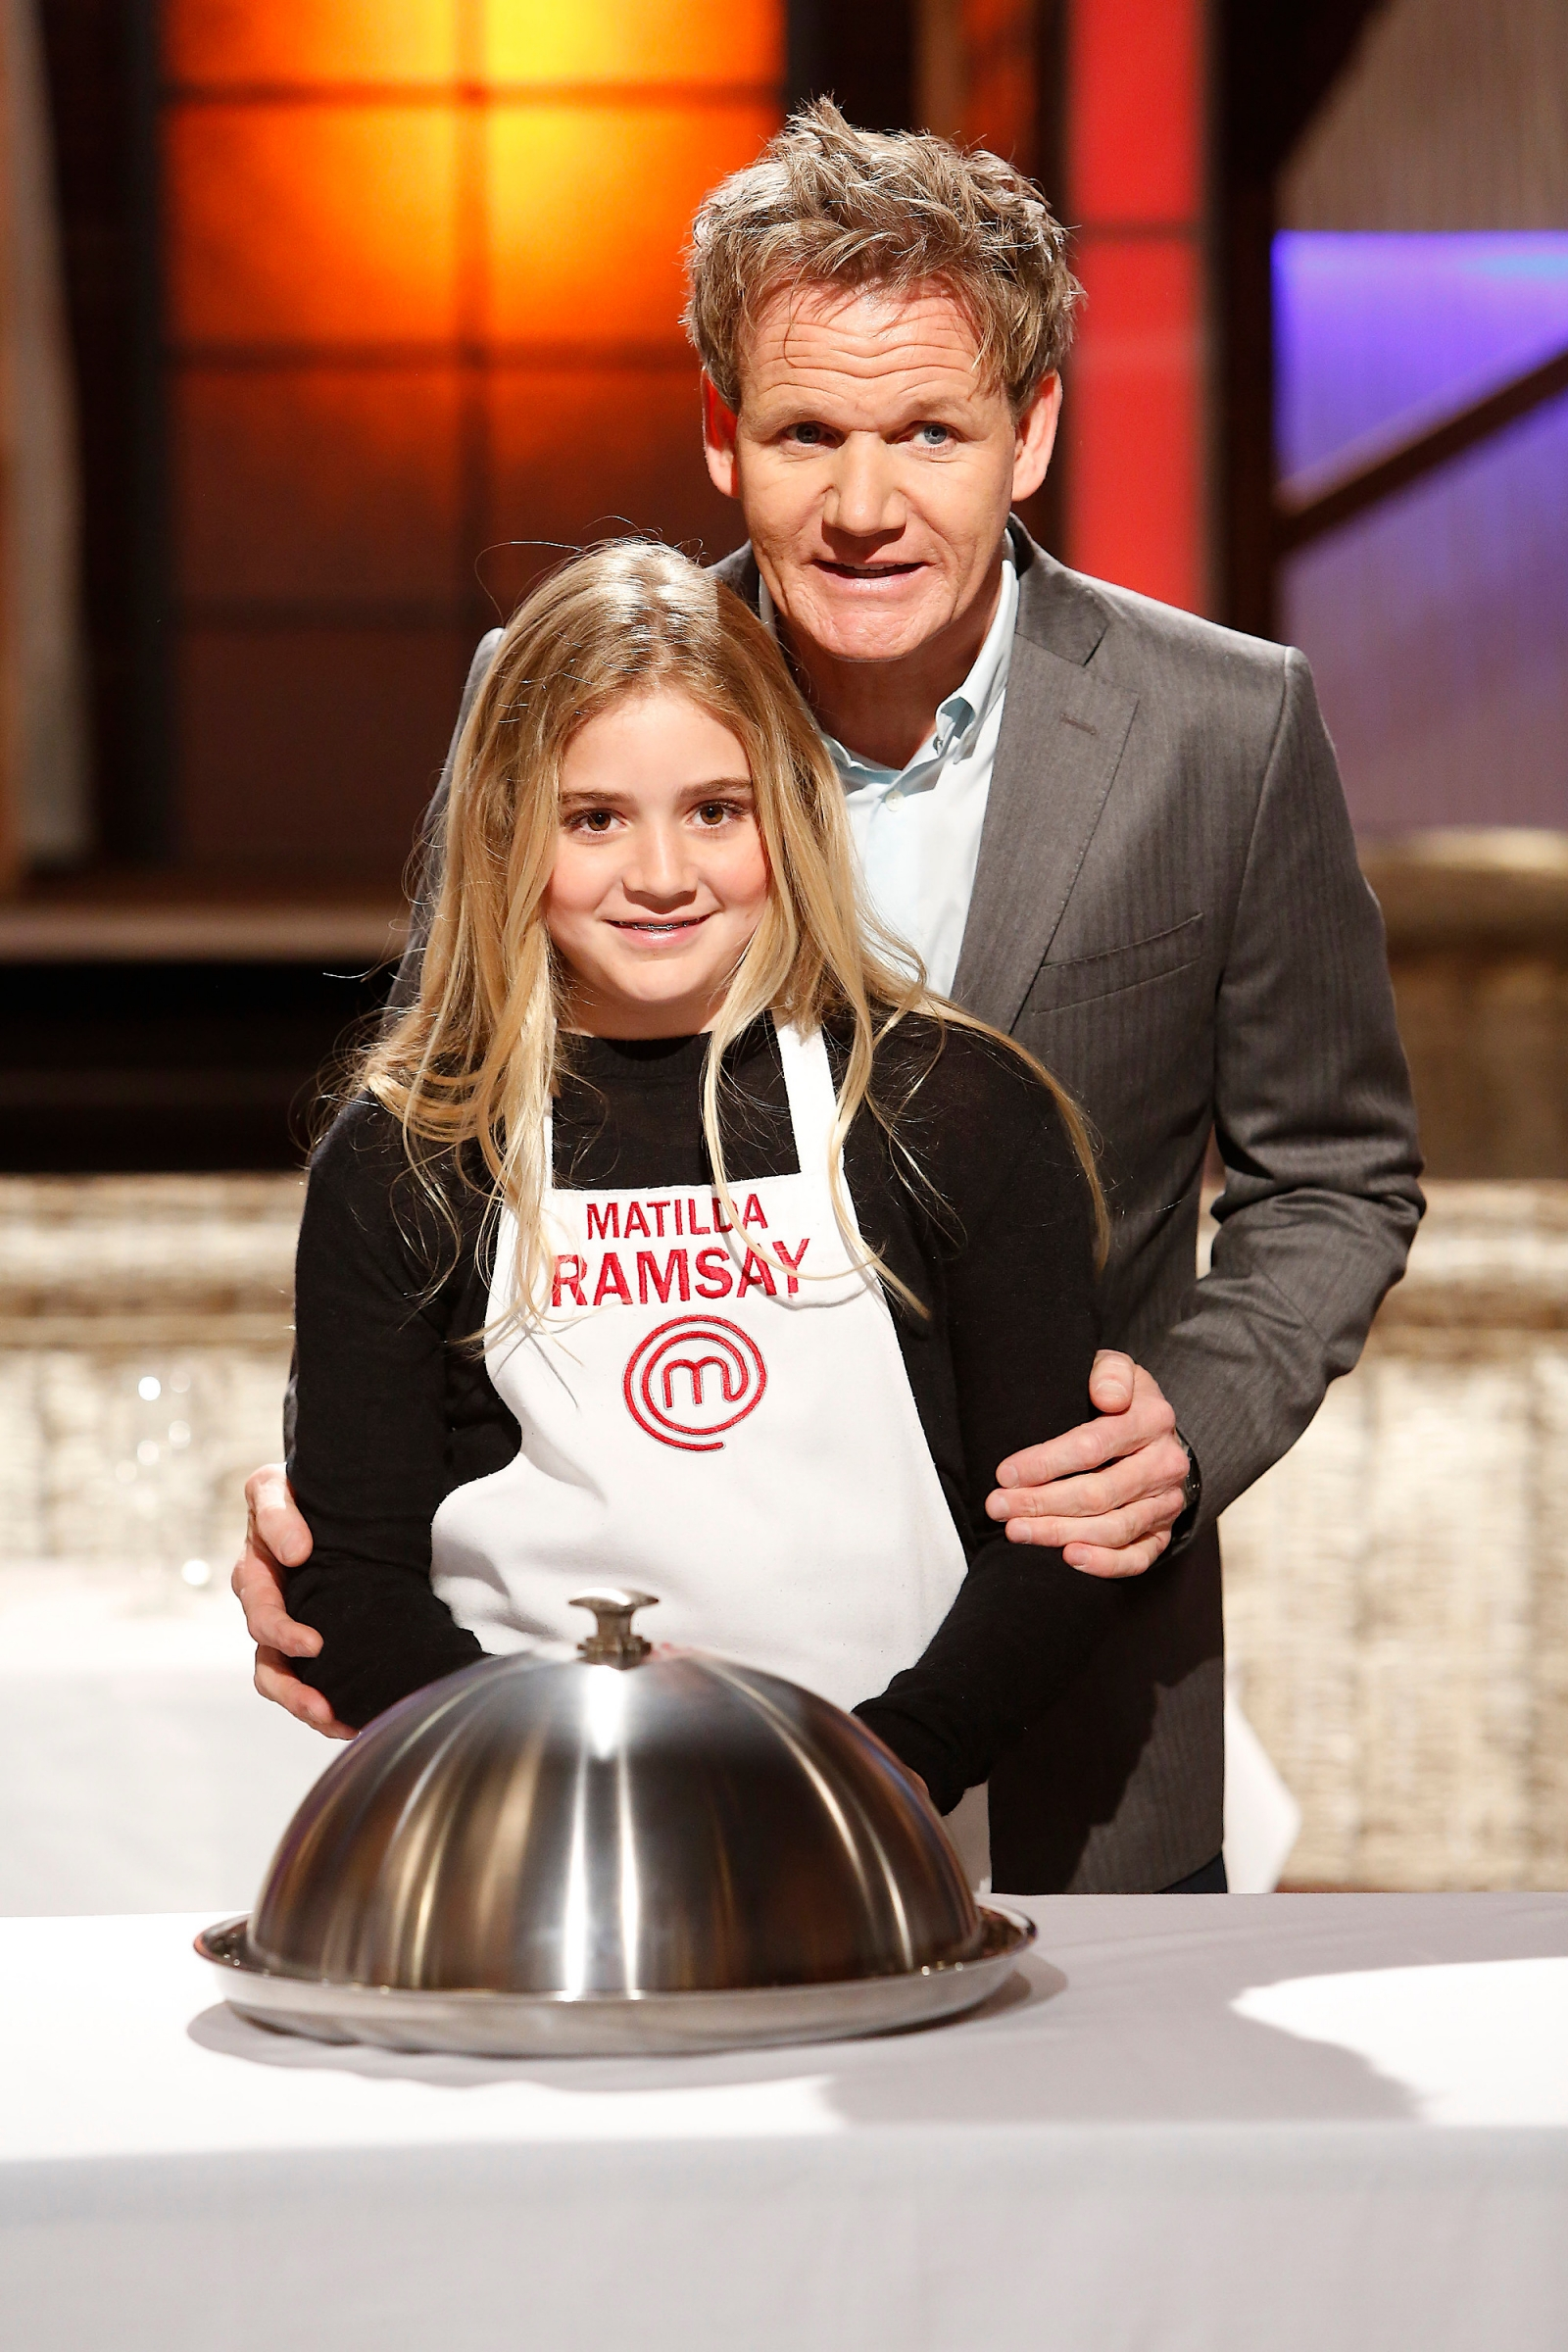 Gordon Ramsay's 15-Year-Old Daughter Lands a Cookbook Deal